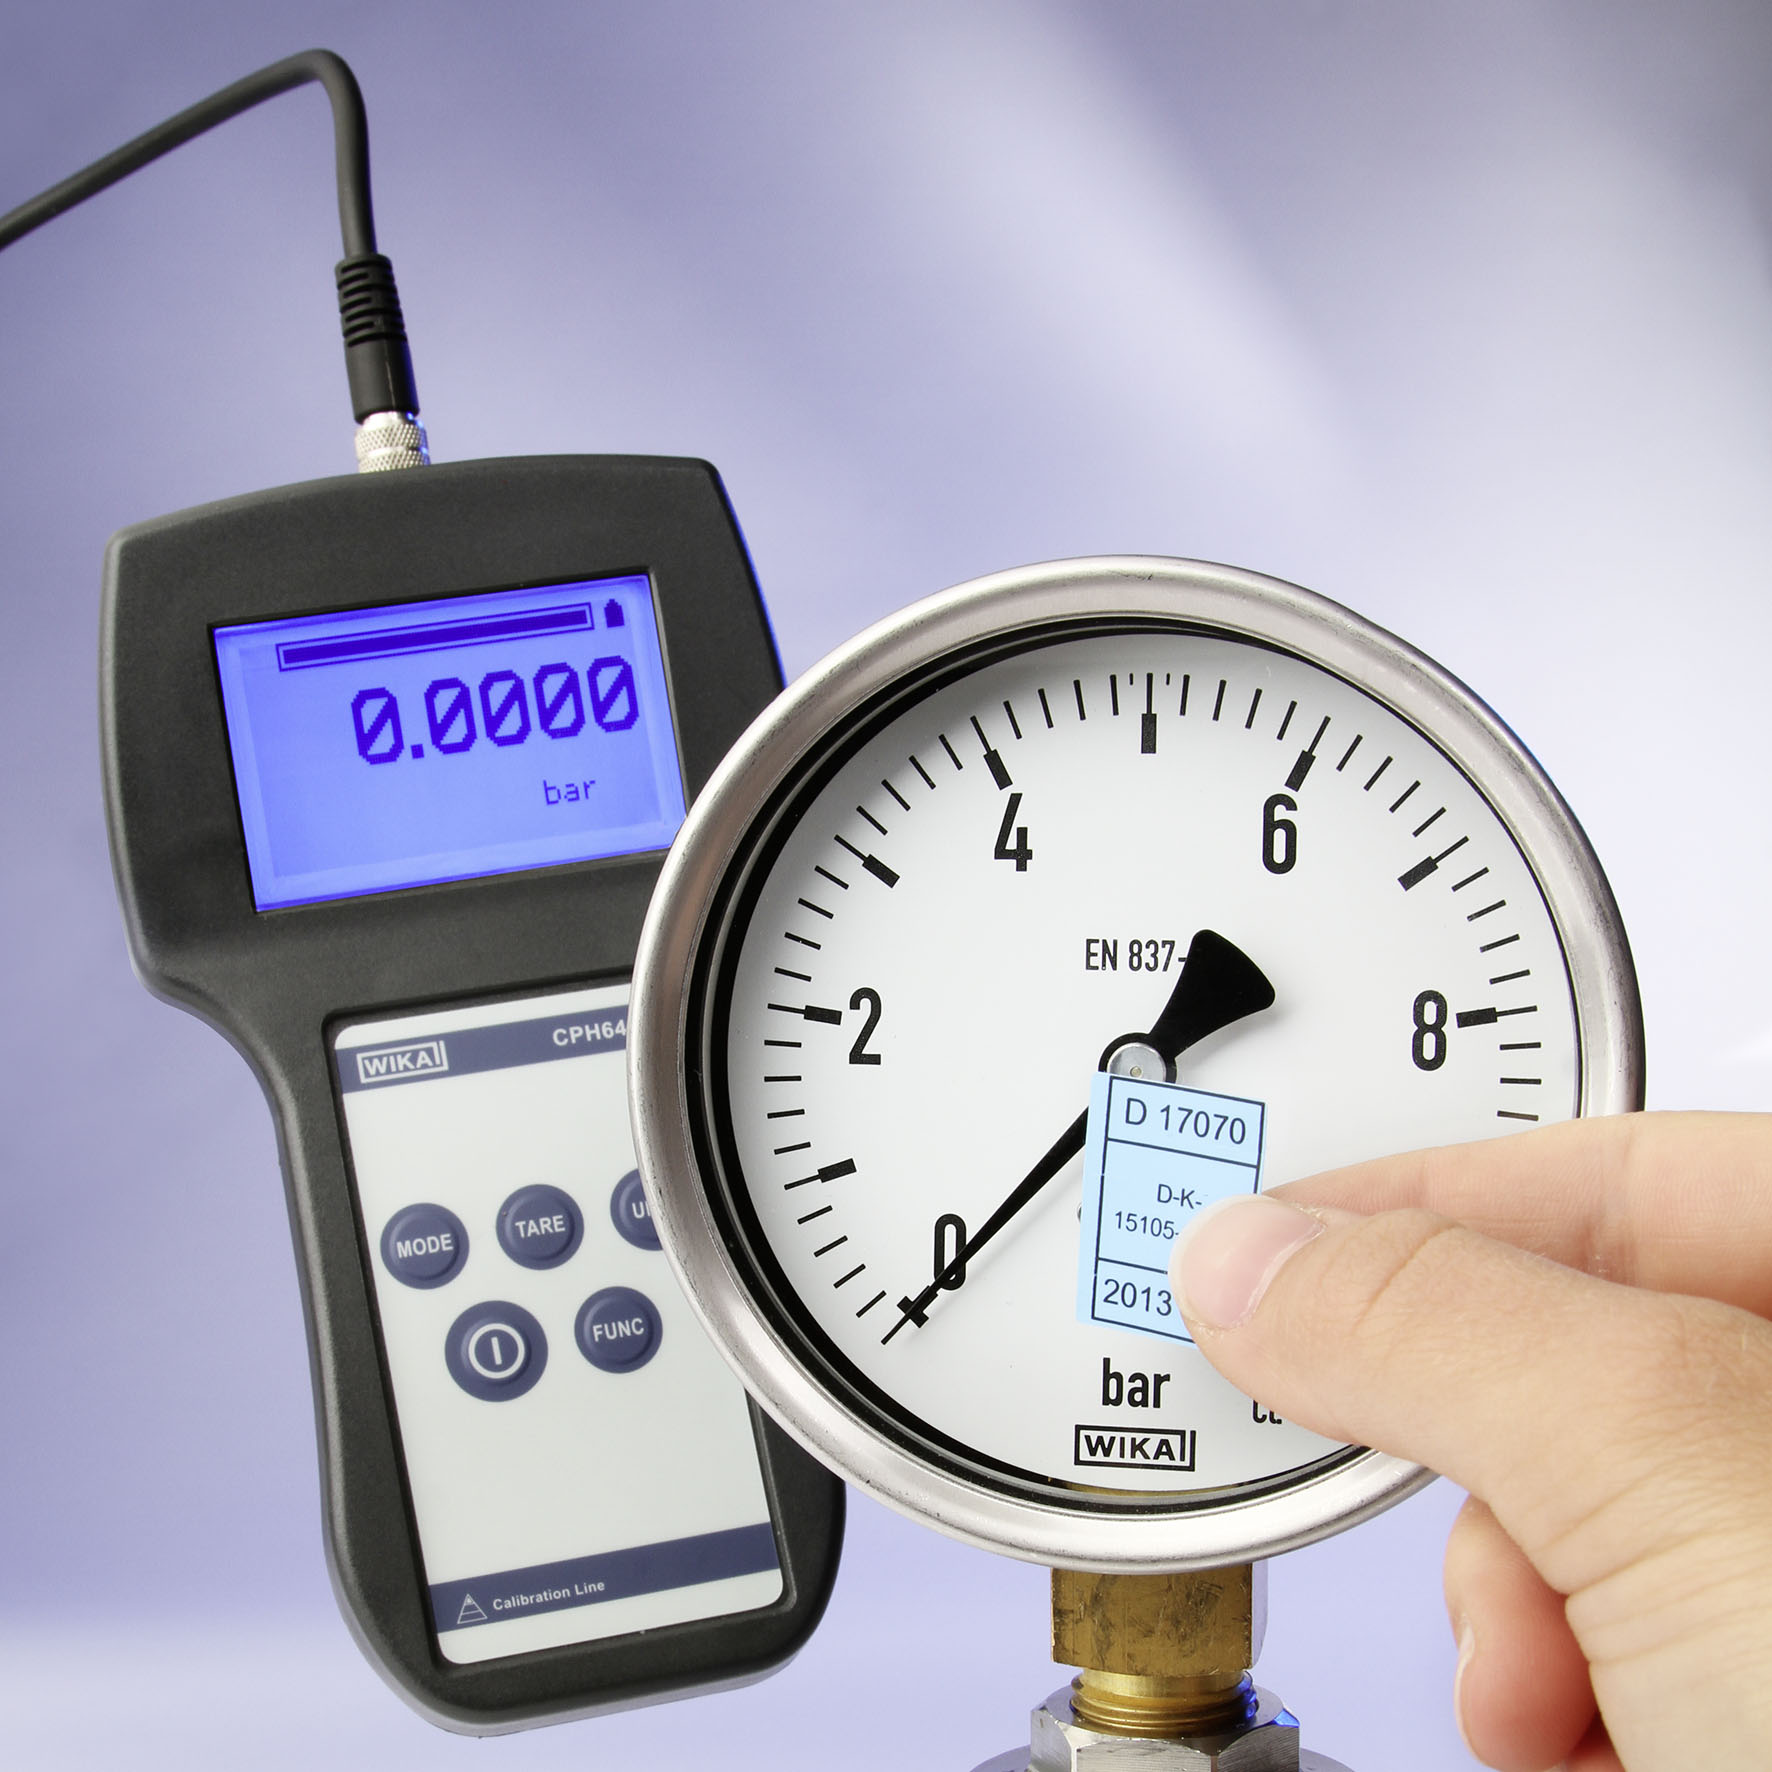 CalibrationServices